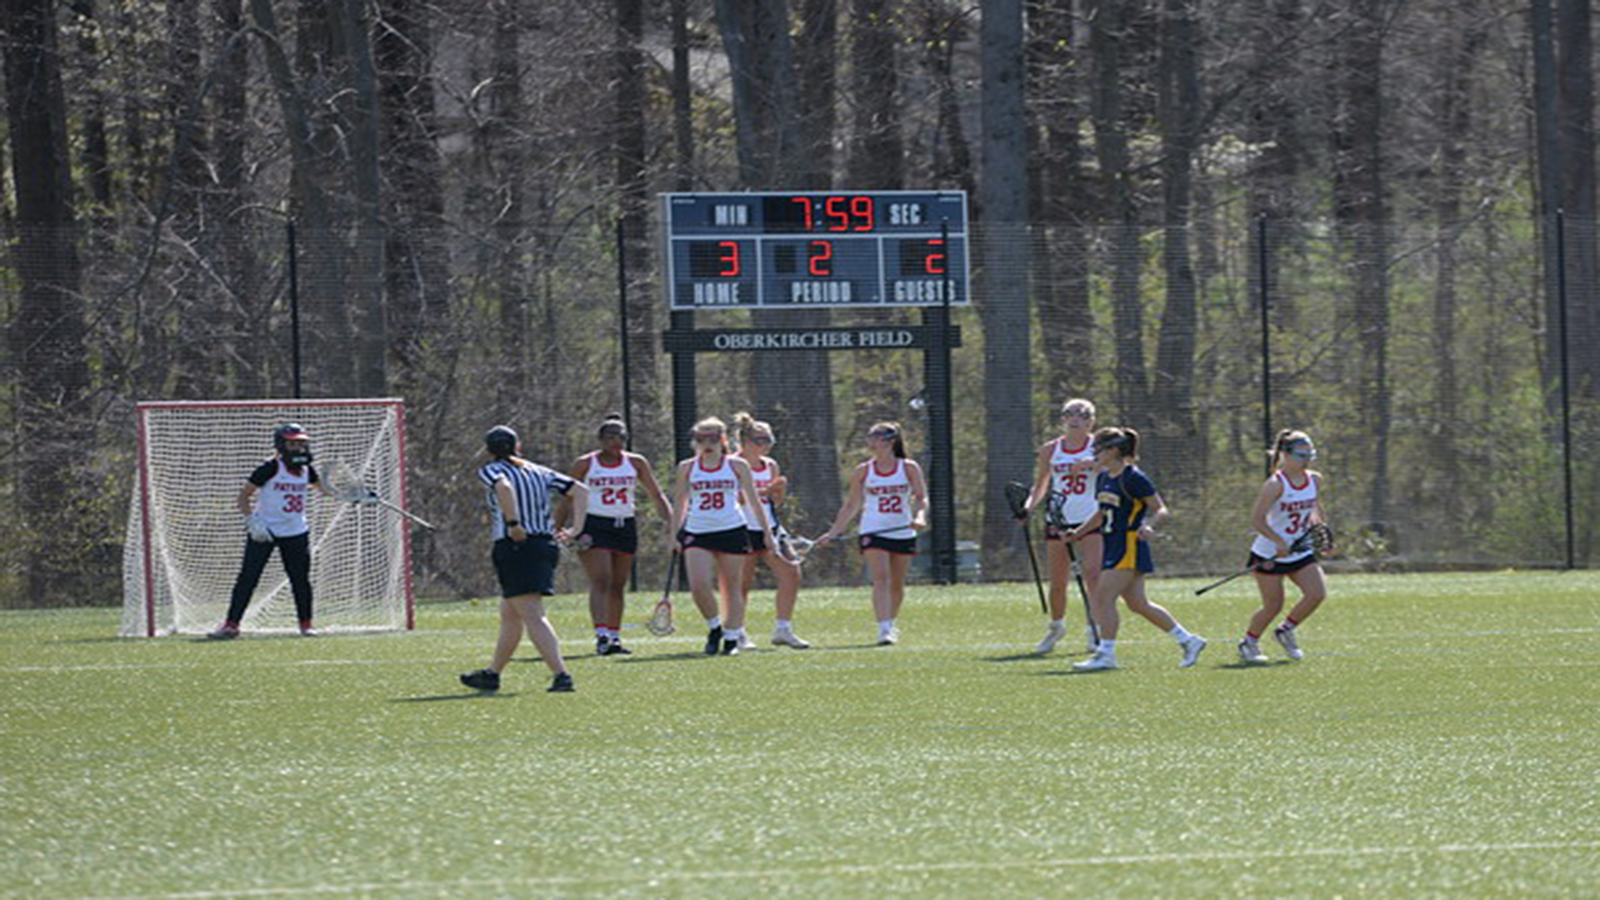 Girls Lacrosse: Patriots Look to Build Winning Culture in 2018